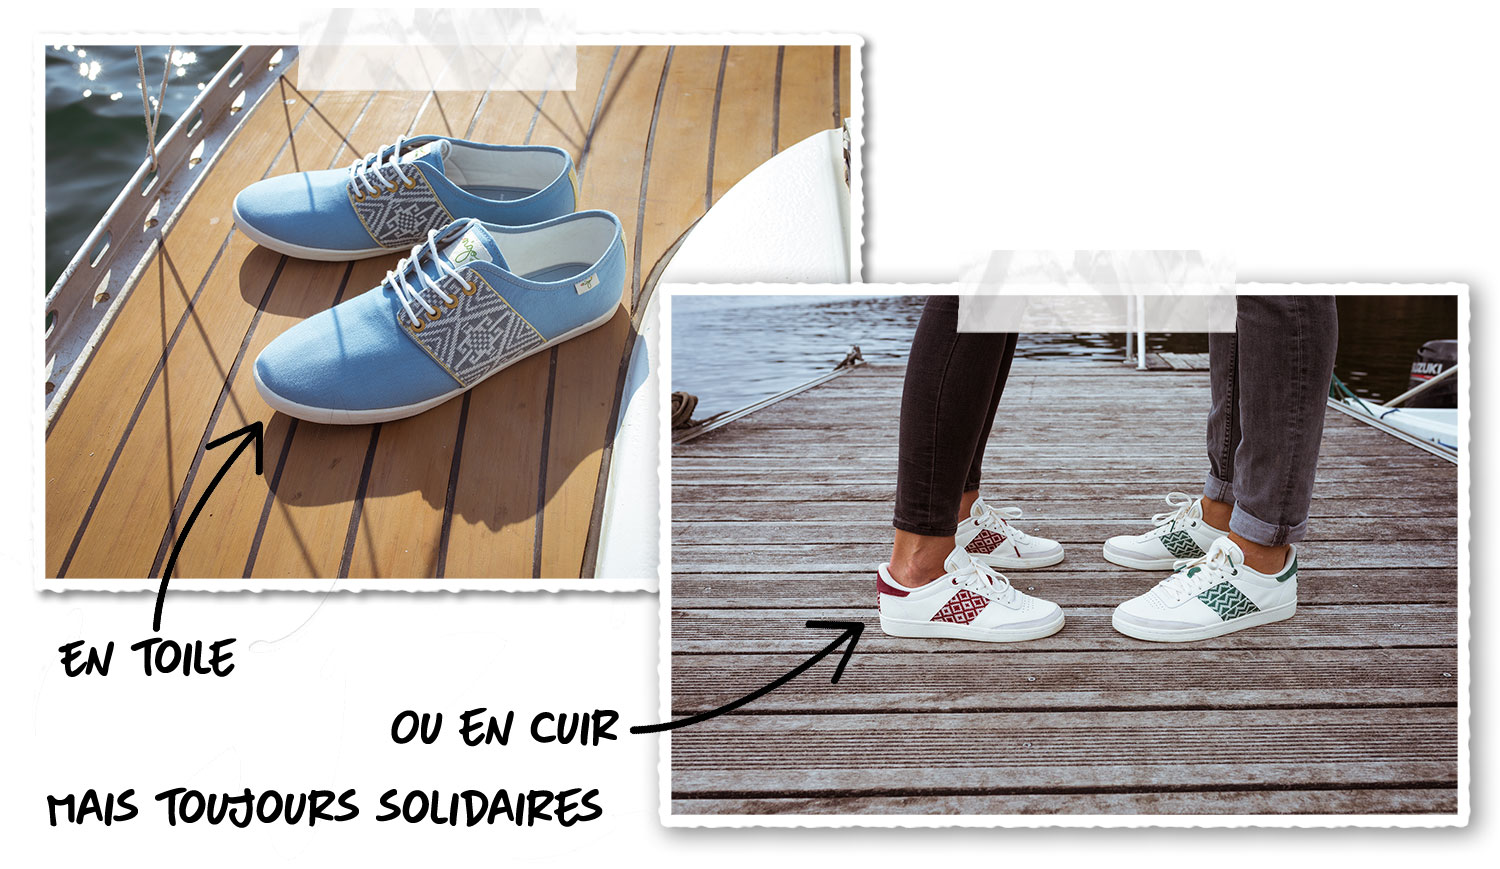 Vietnam Made In Chaussures N'goLes Solidaires E2WHeD9IY